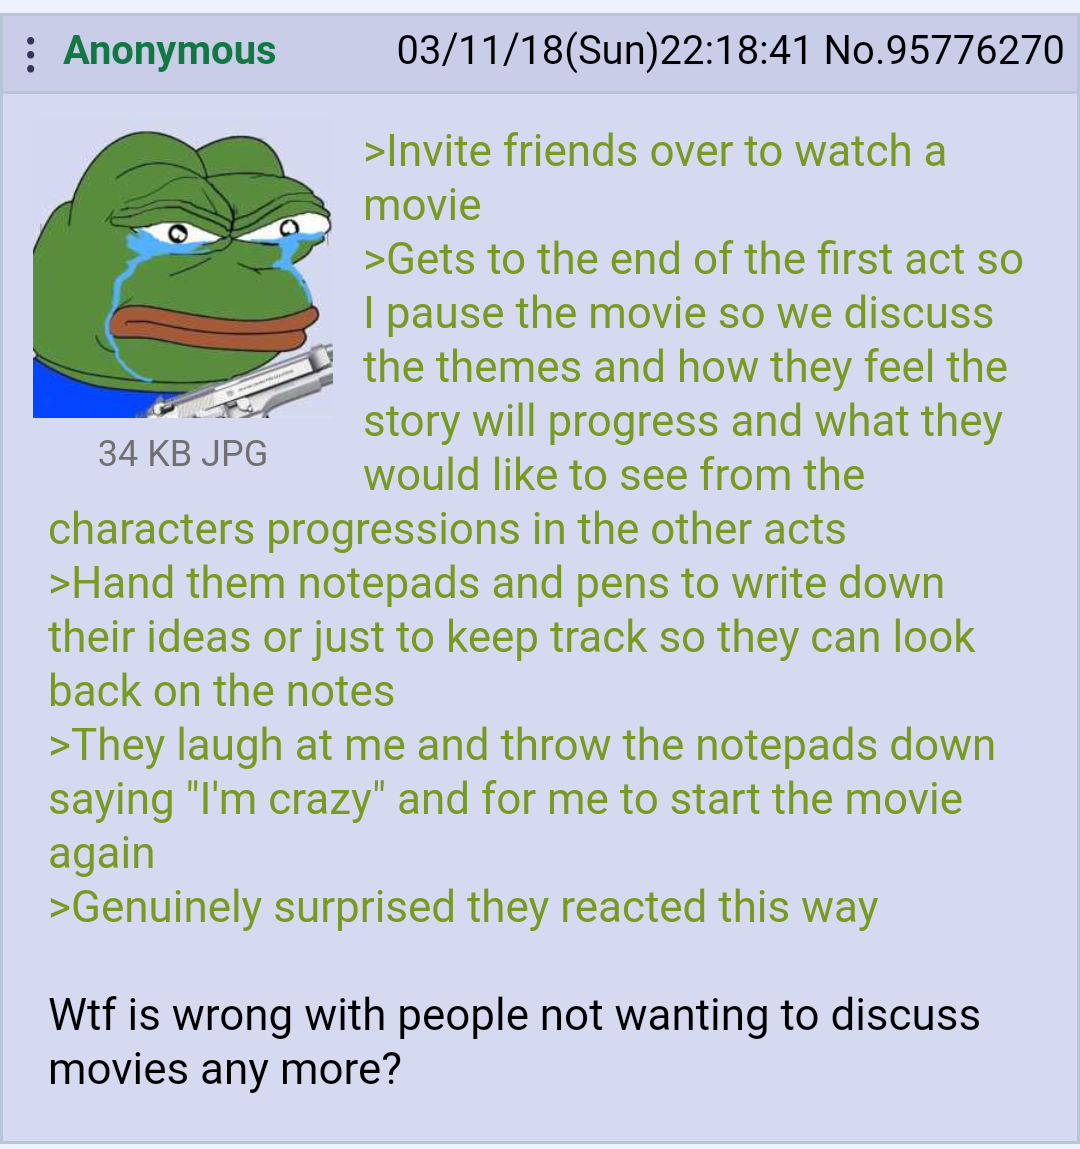 Anon watches a movie with some friends